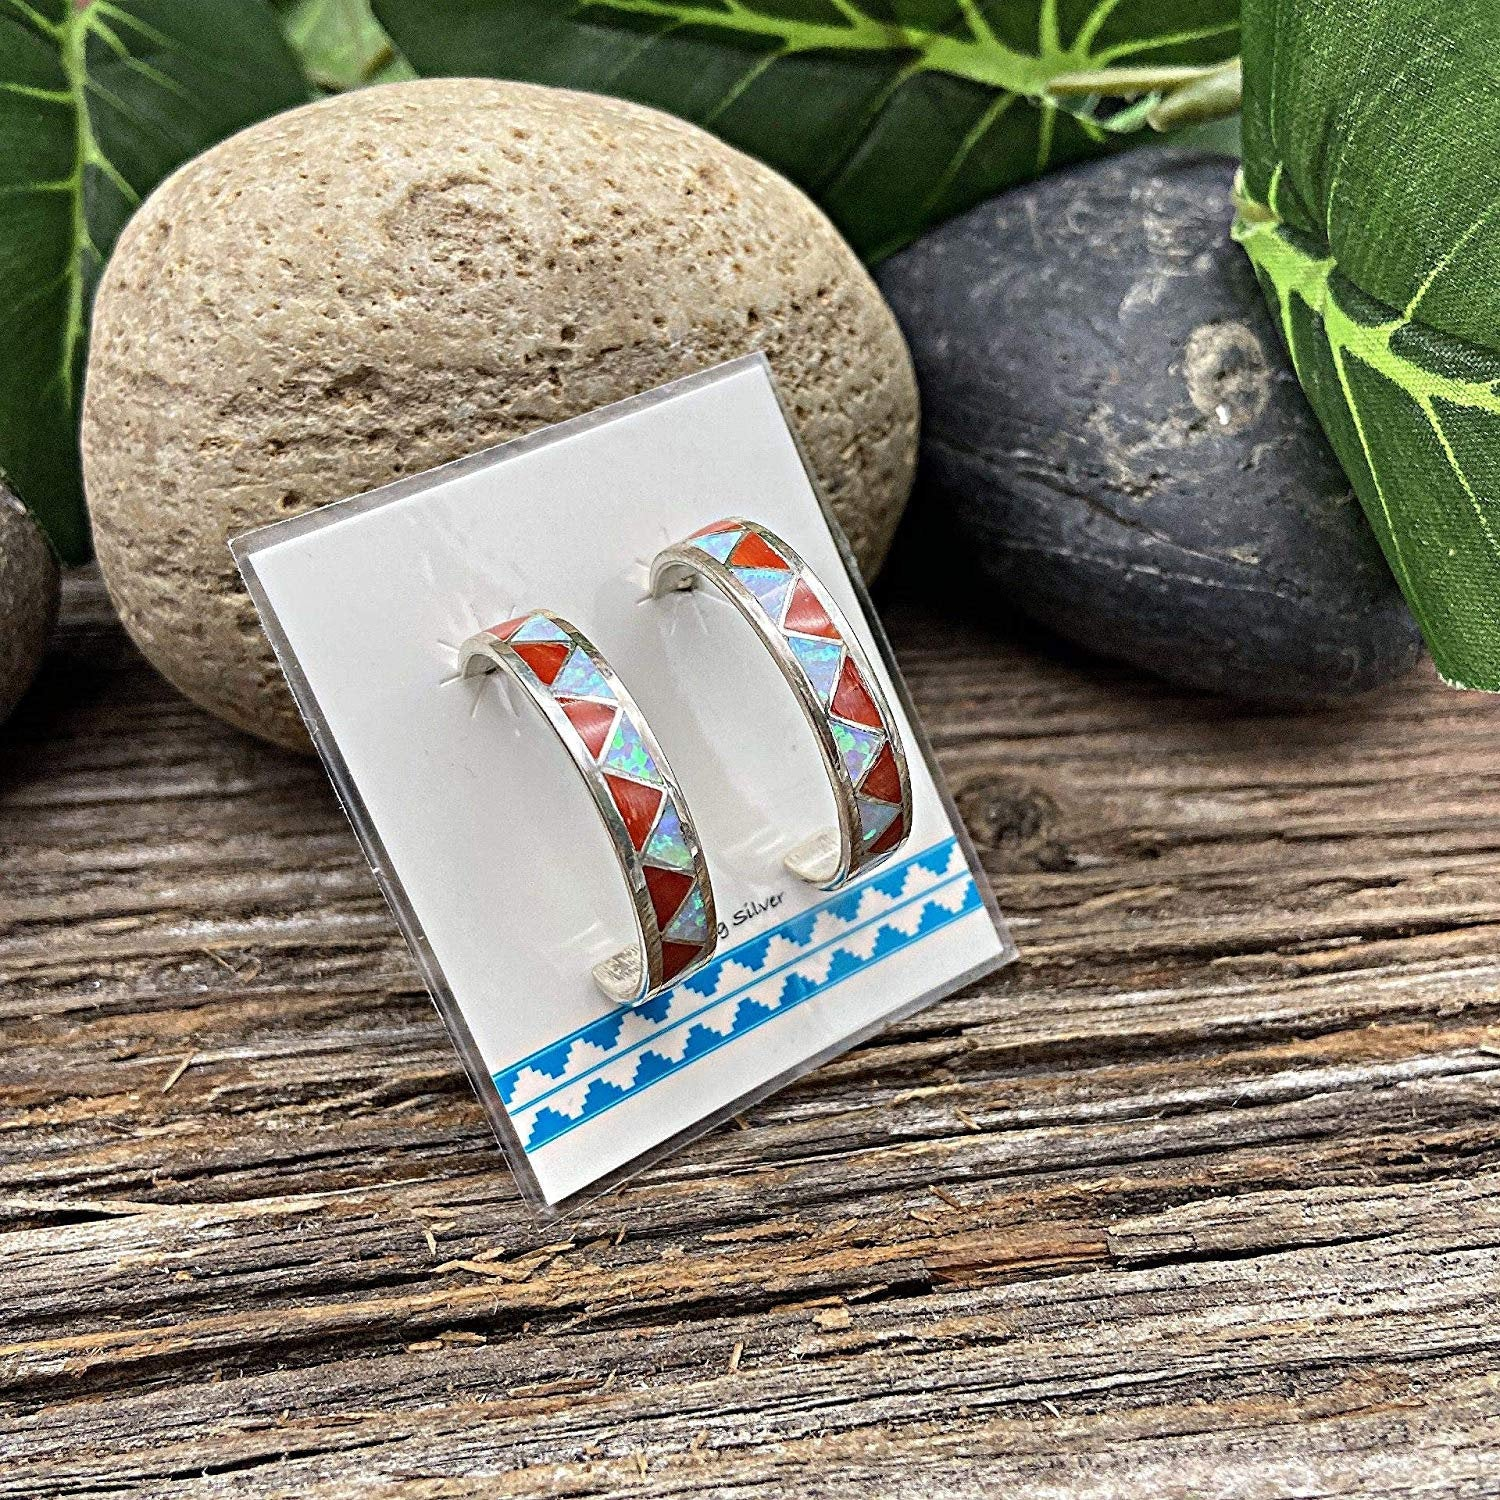 Red Coral and Moonstone Half Hoop Earrings in 925 Solid Sterling Silver, Native American Handmade in the USA, Nickle Free, Gift Boxed